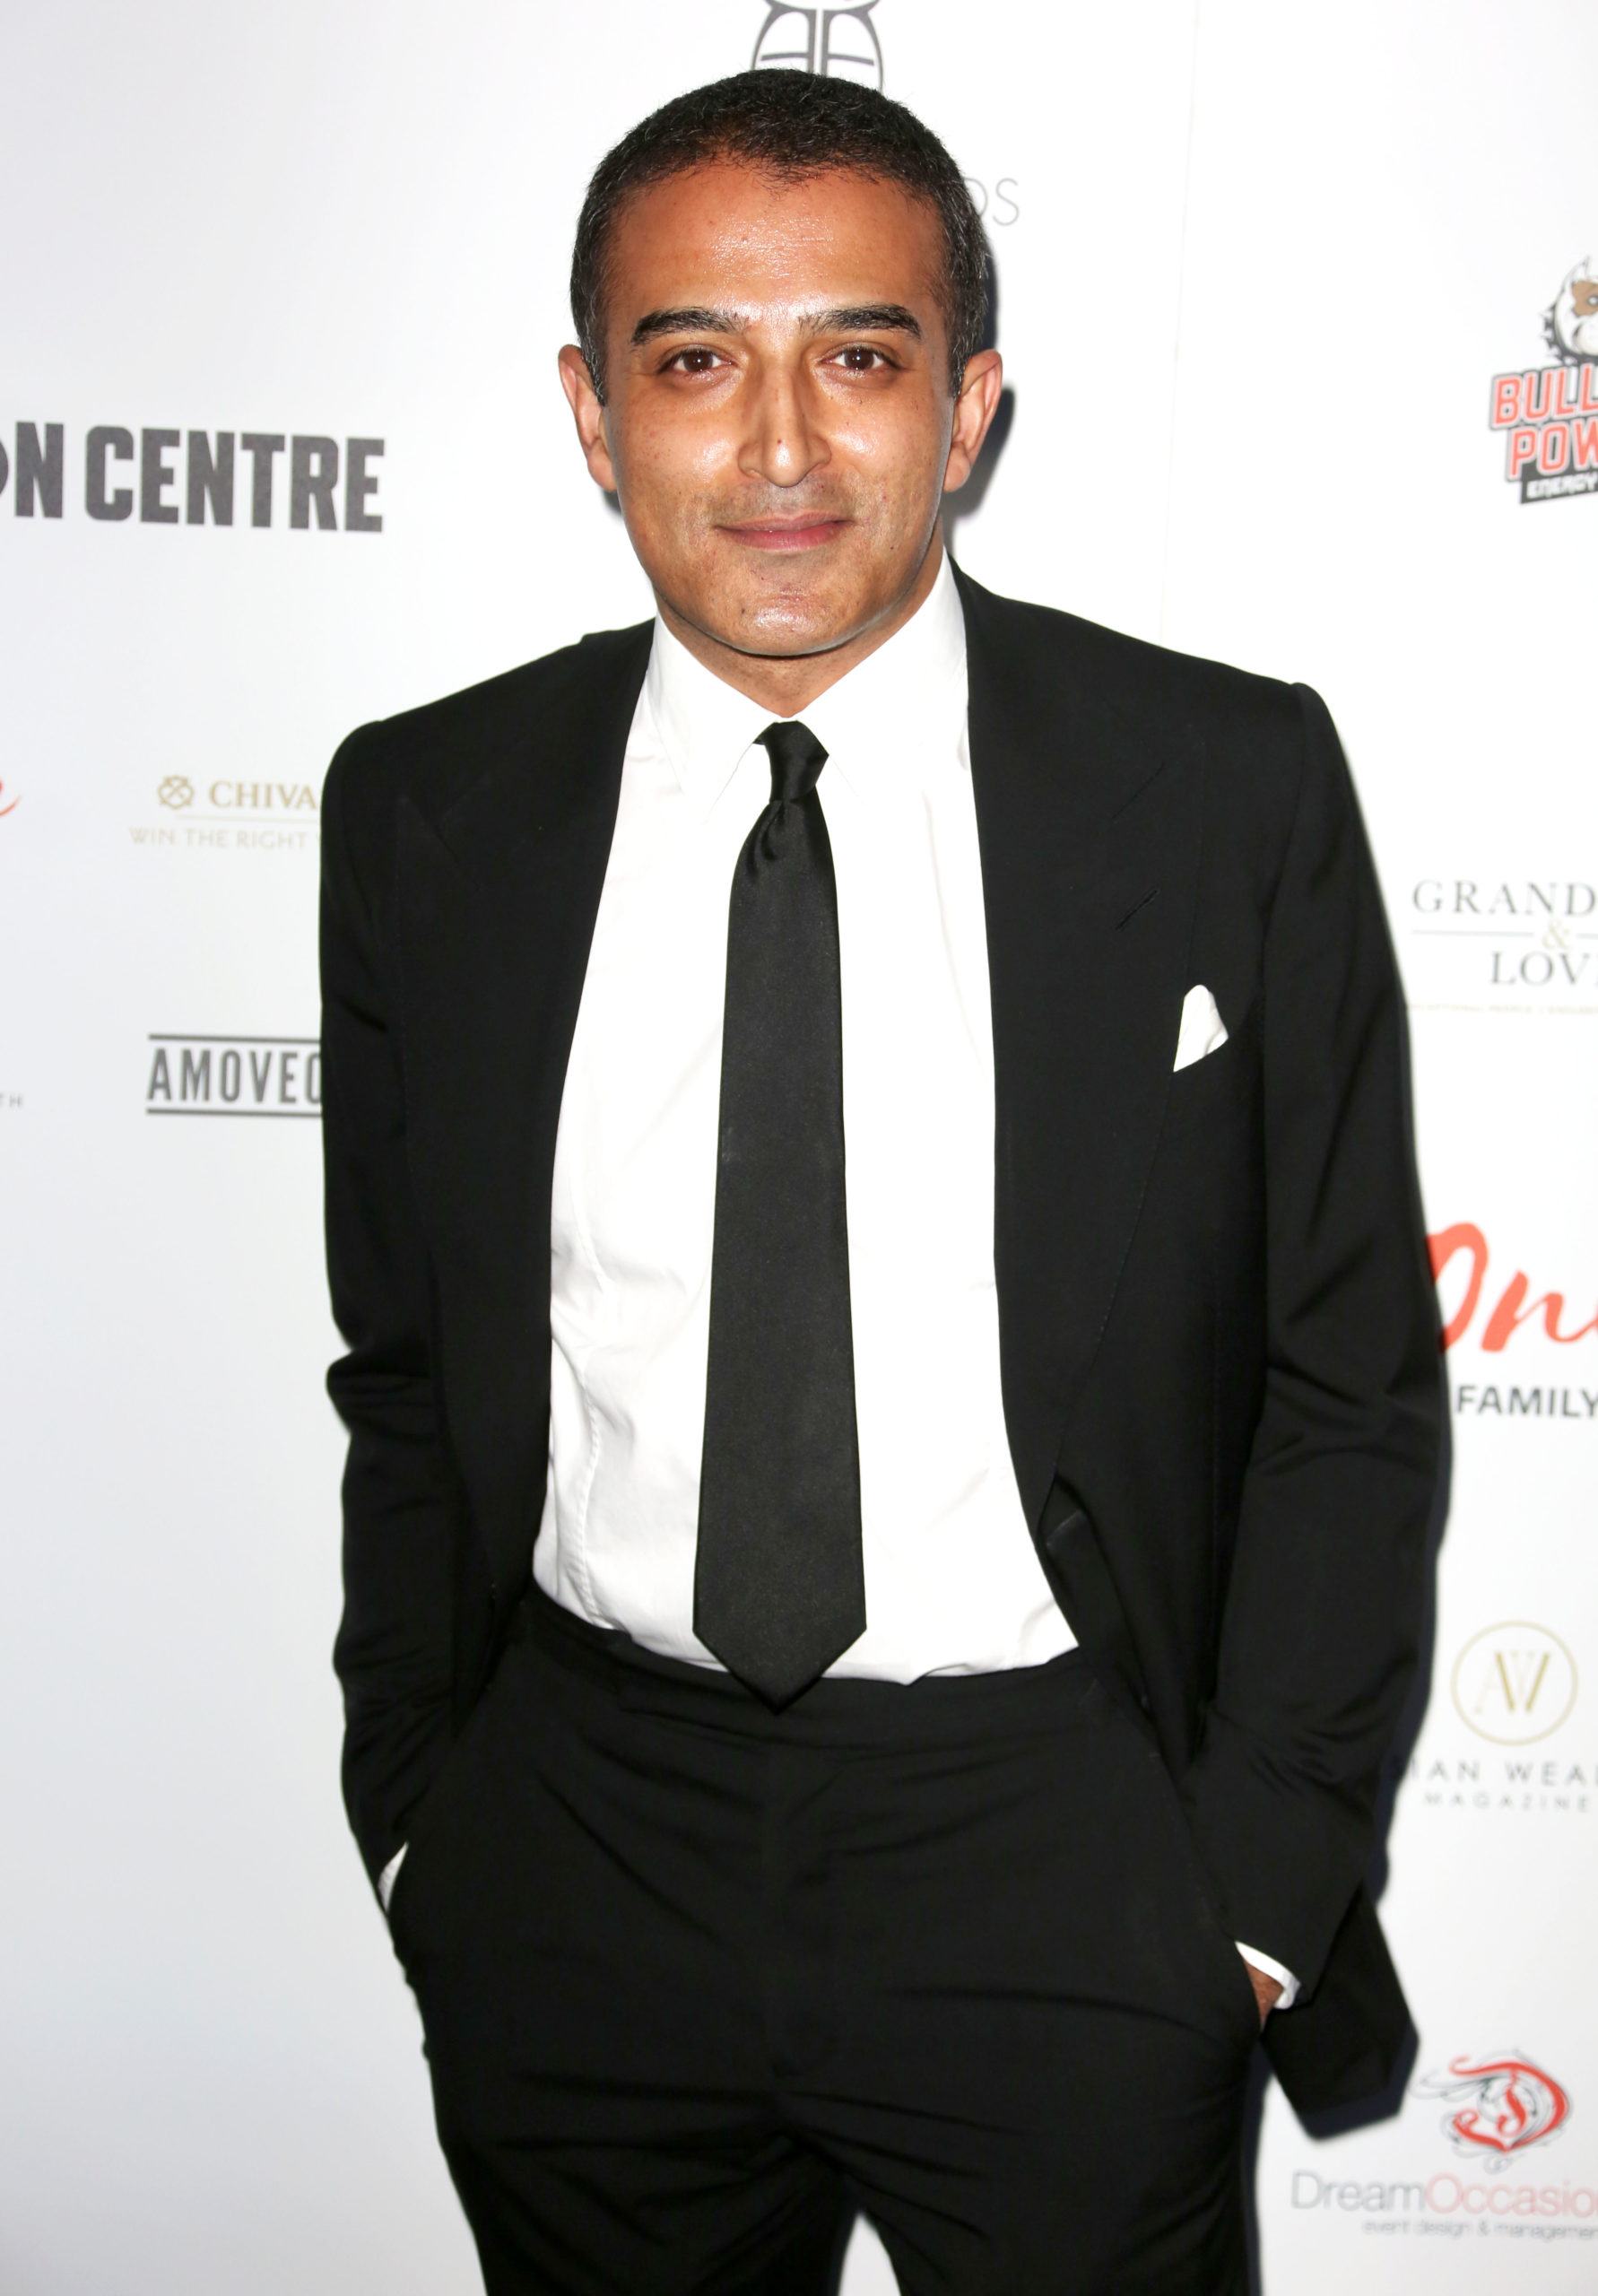 adil ray on the red carpet